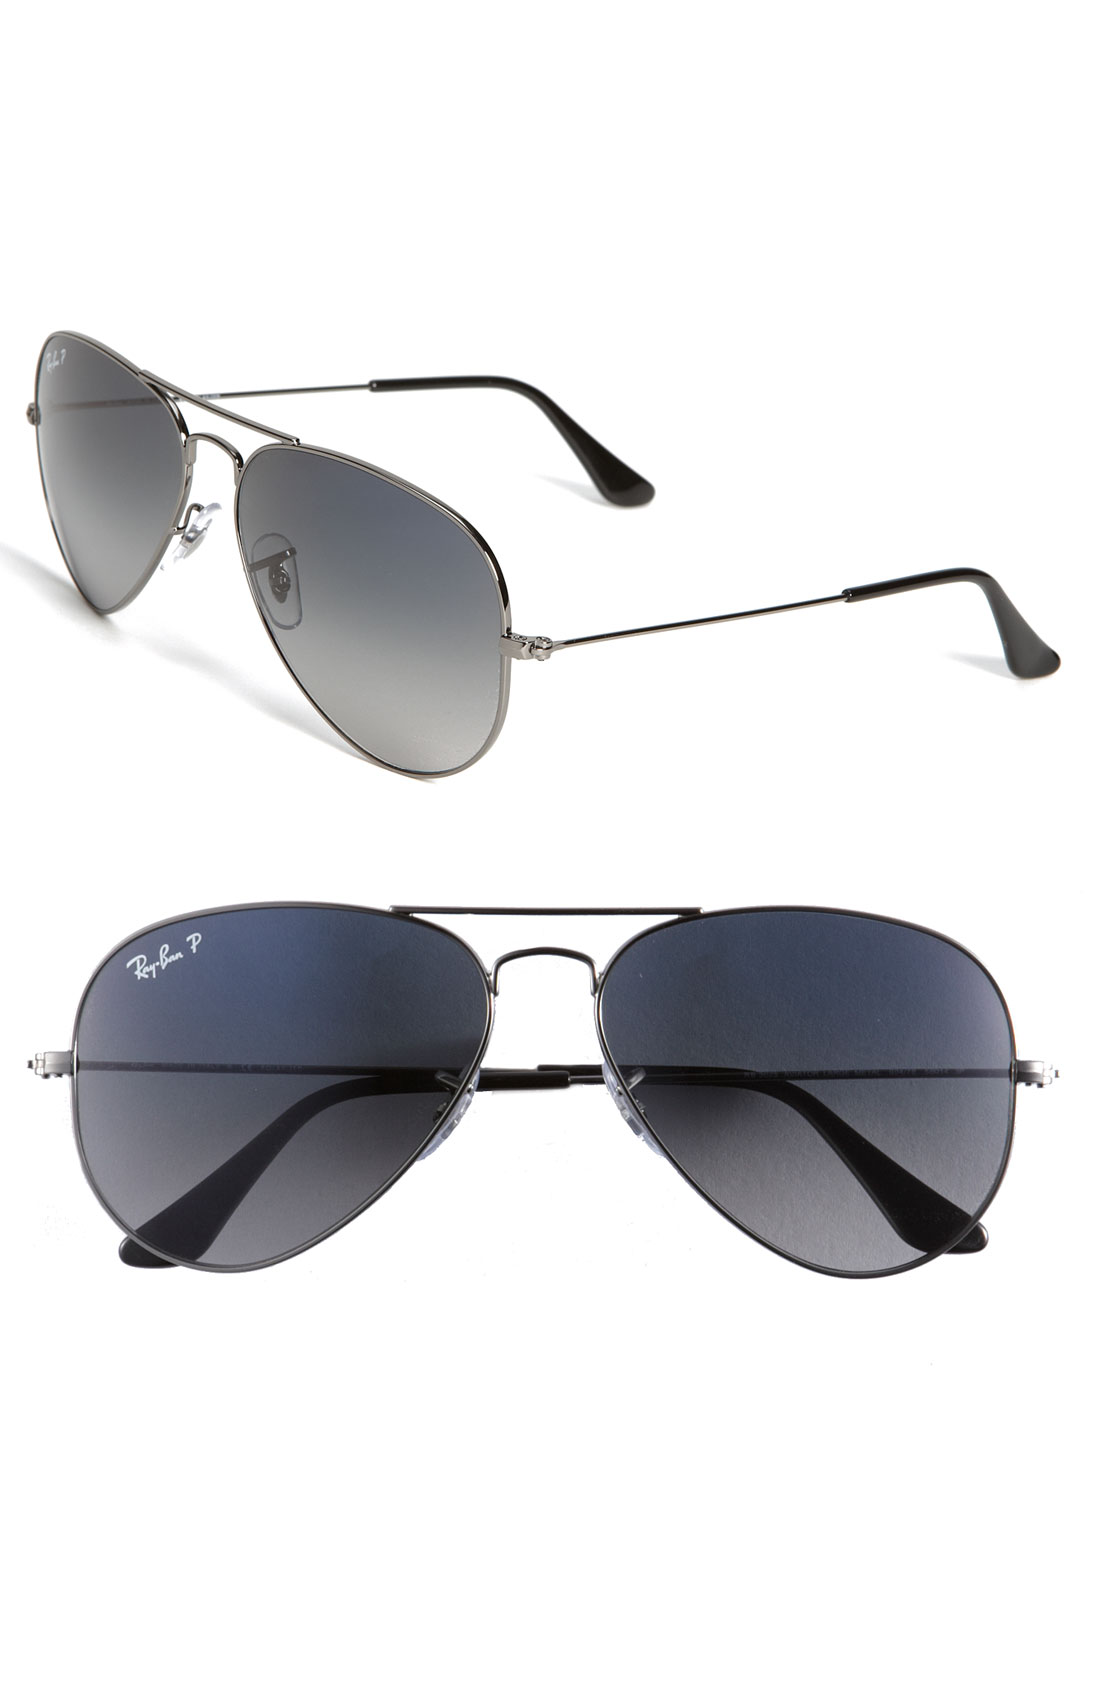 ray ban aviator sunglasses price in army canteen